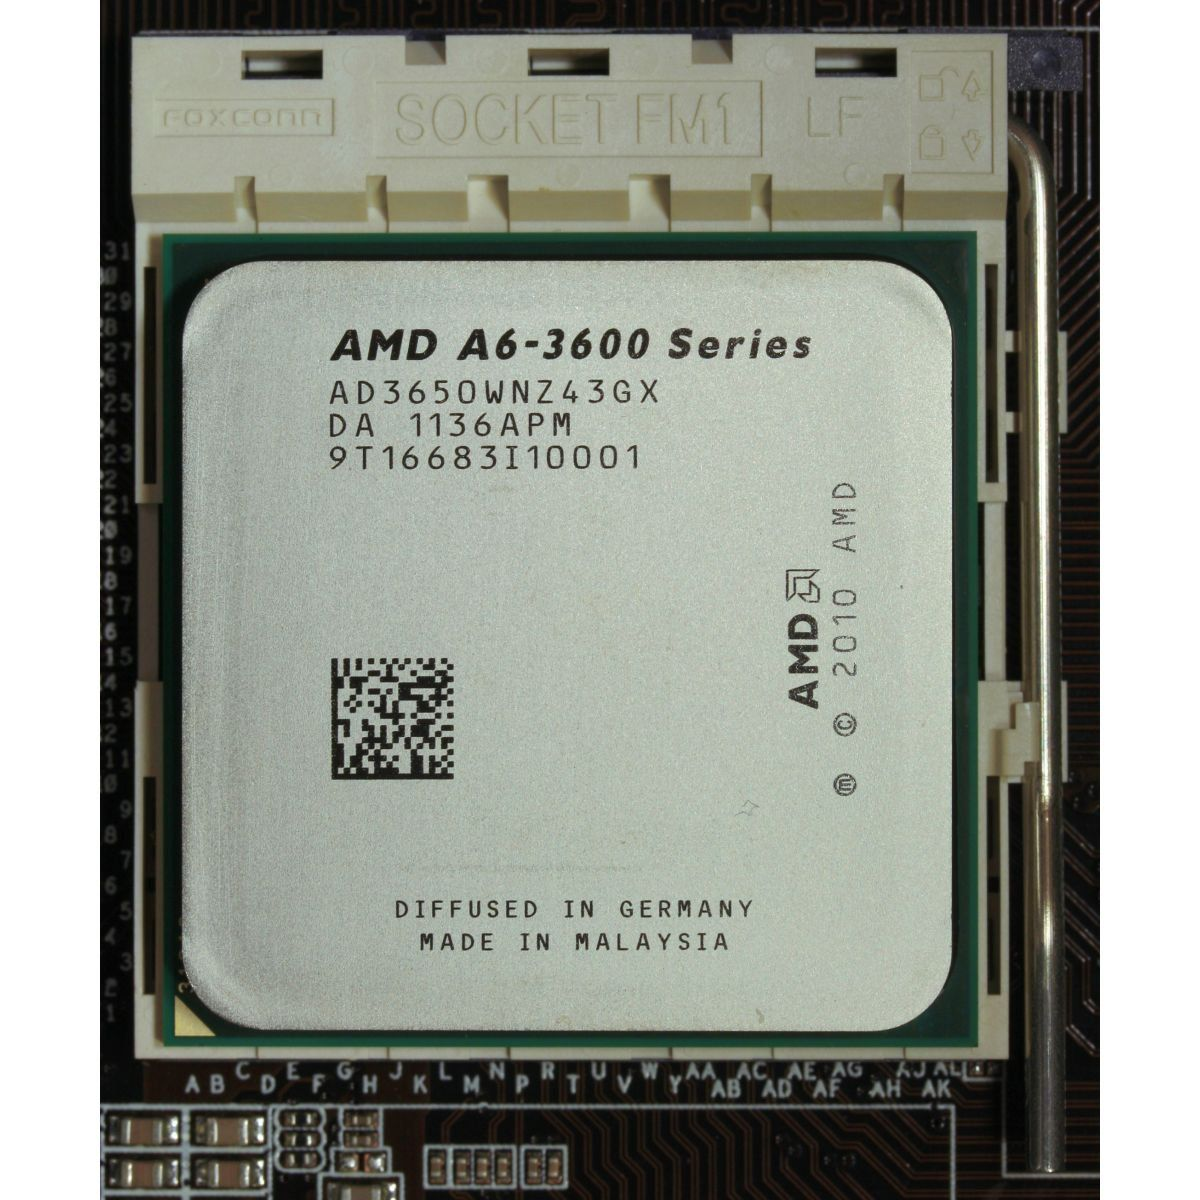 Processador Amd Fm1 A6-3650 Tc 2.6ghz 3mb / With Radeon Hd 6530d *Box*